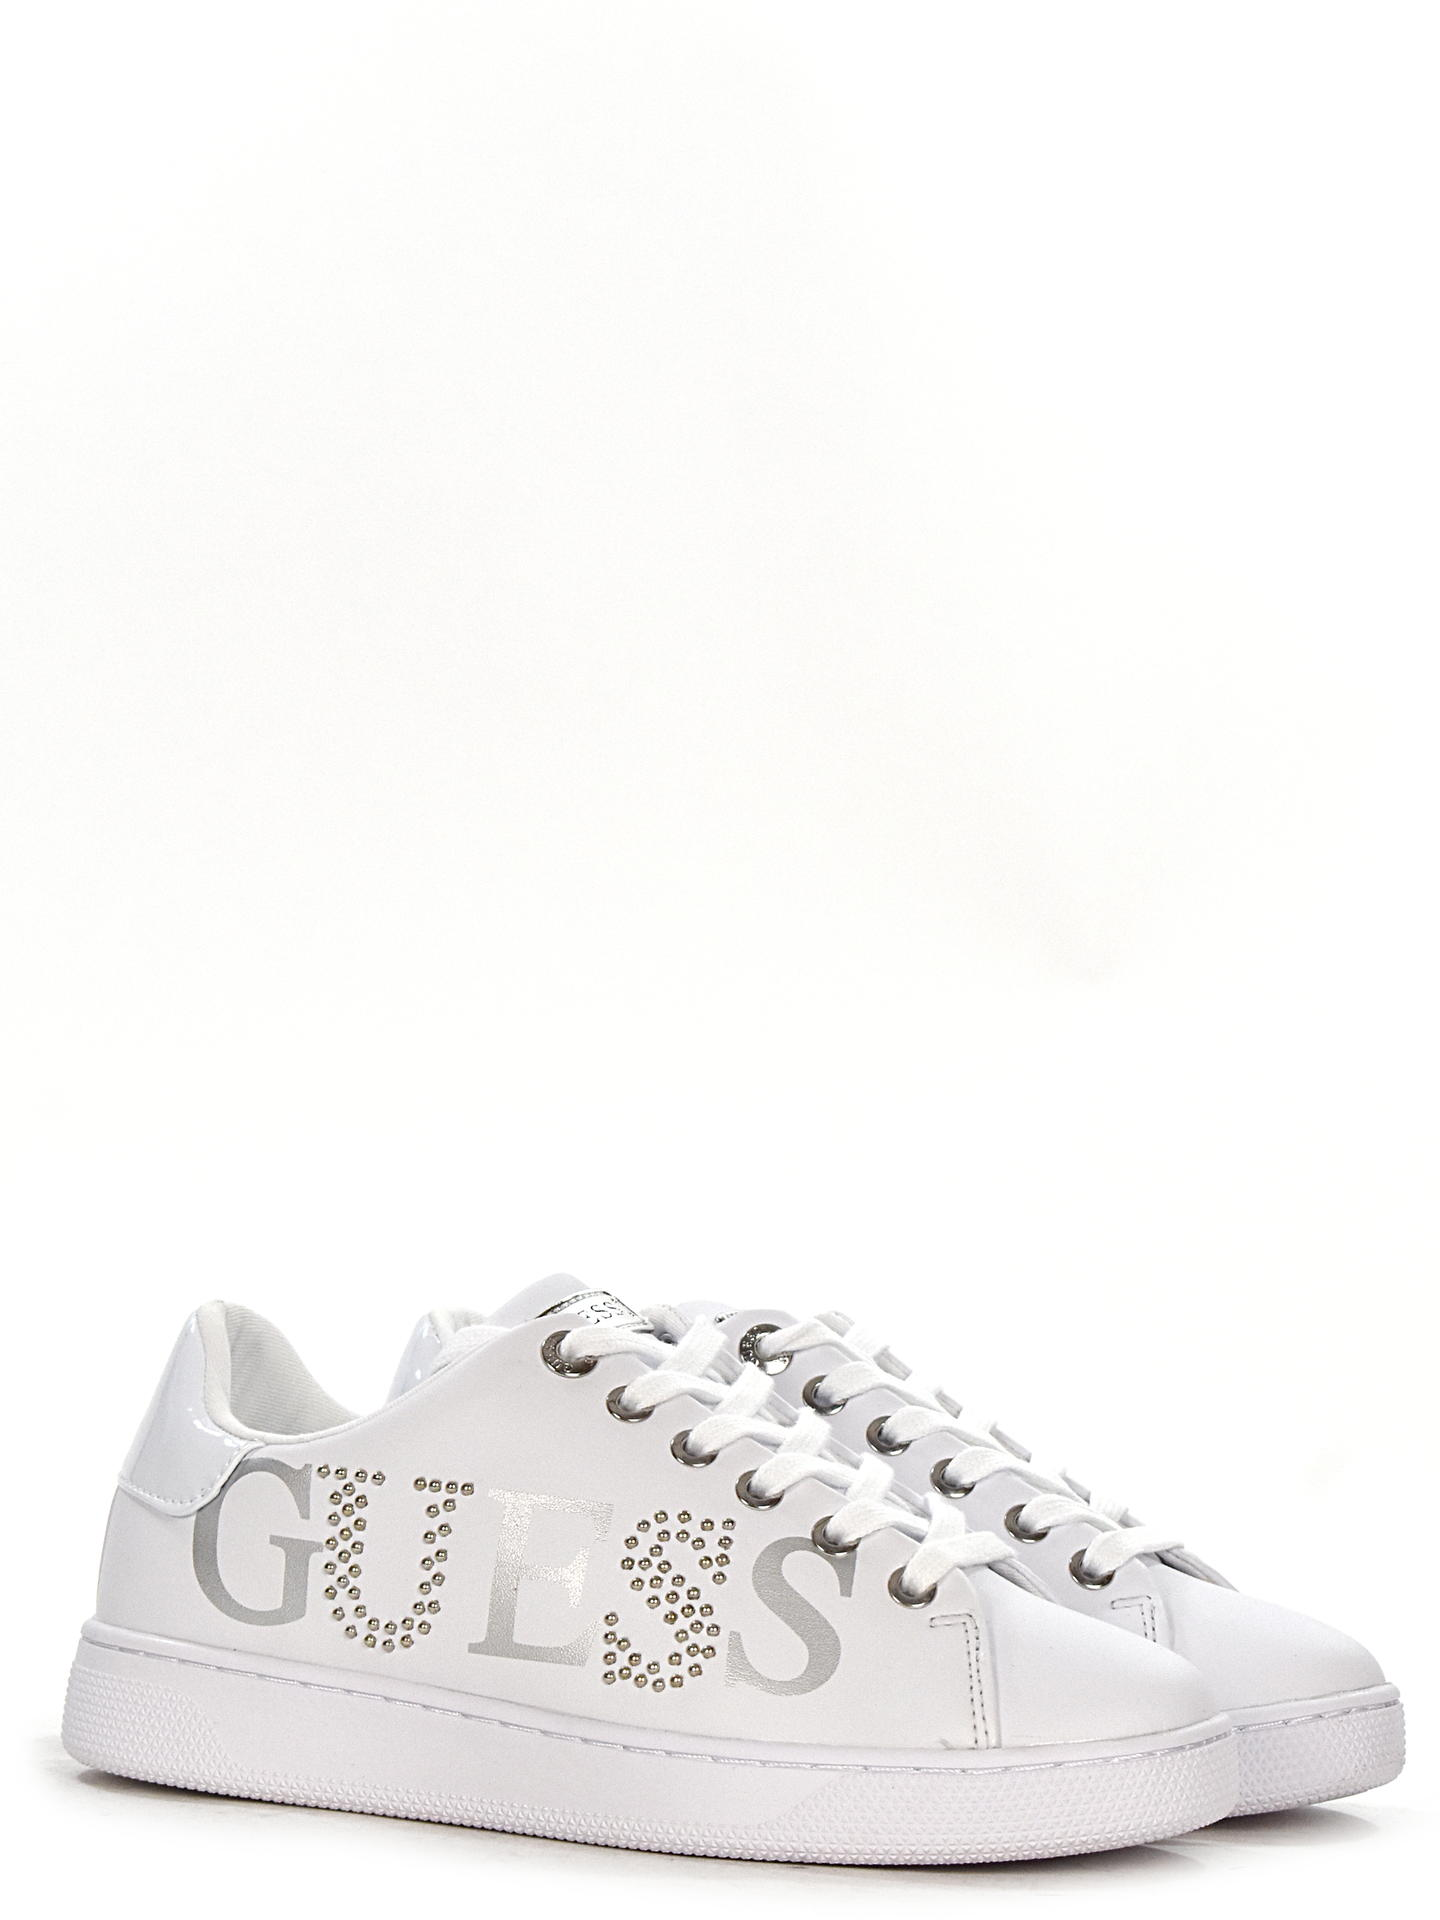 SNEAKERS GUESS RID BIANCO | DESIDERIO COLLECTION